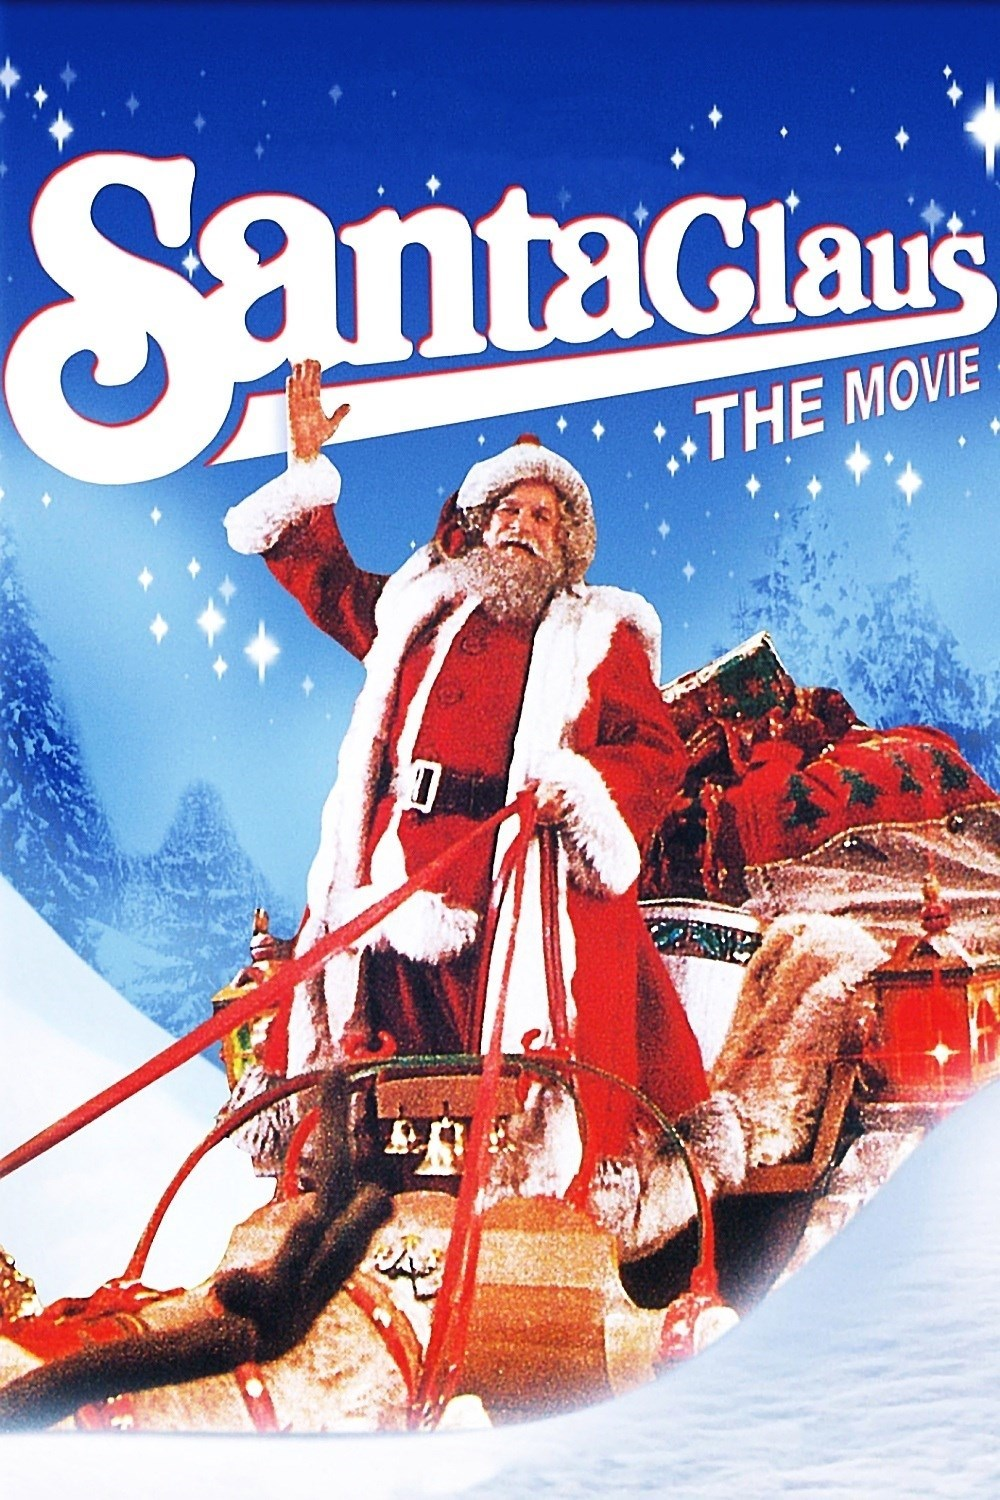 santa claus the movie - Santa Claus Santa Claus Santa Claus